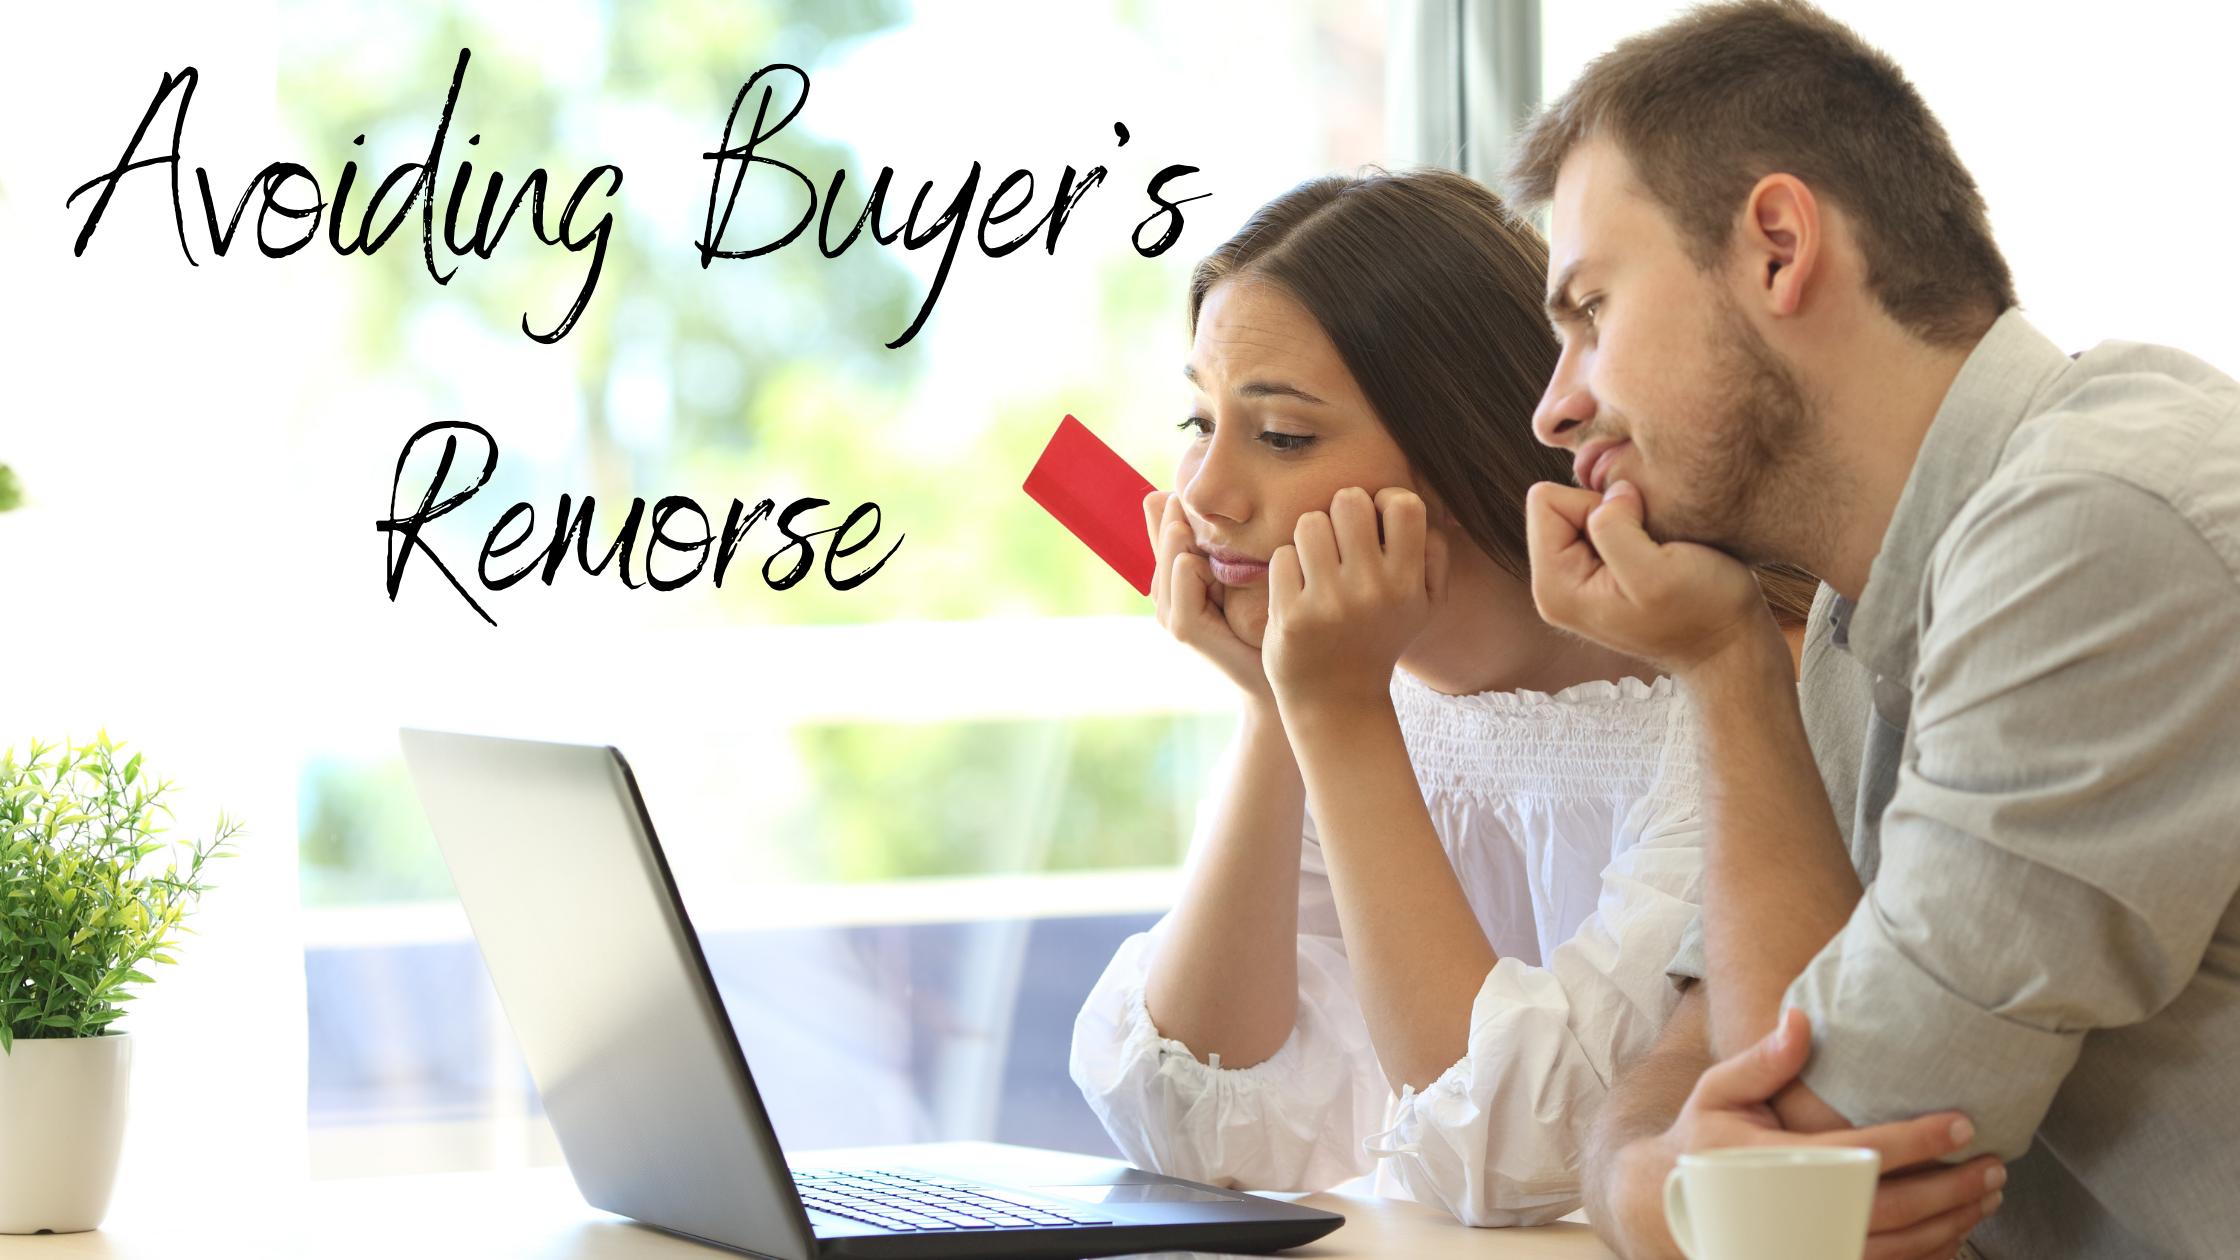 Scared of Having Buyer's Remorse? Here's What to Look Out For